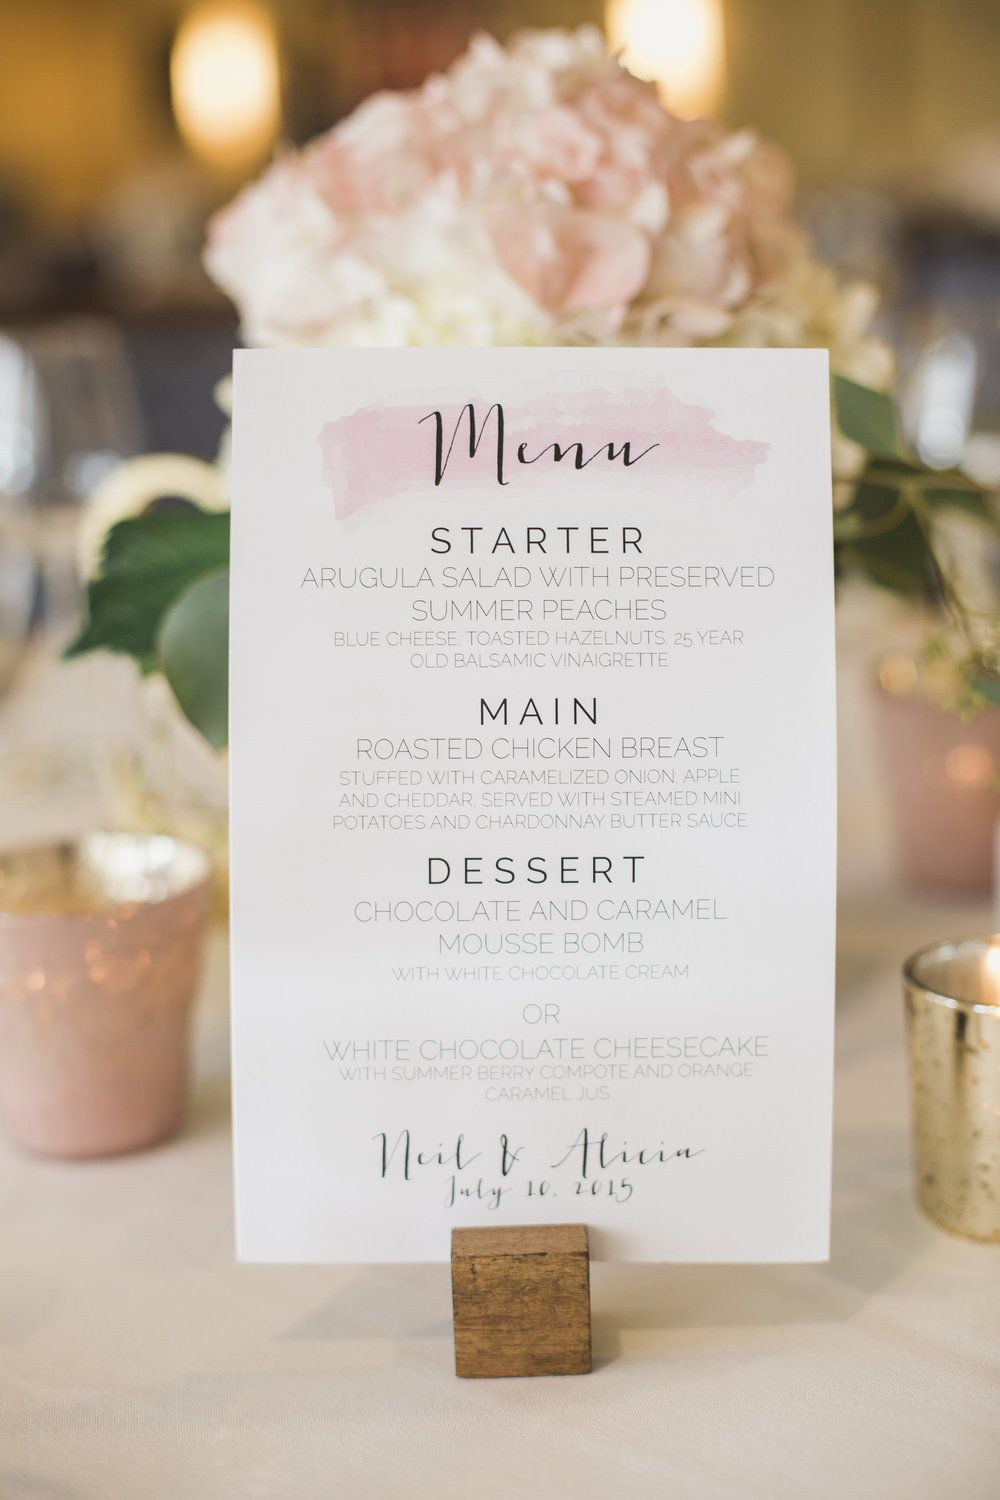 Wedding Rentals | Pinterest | Niagara region, Wedding menu and ...